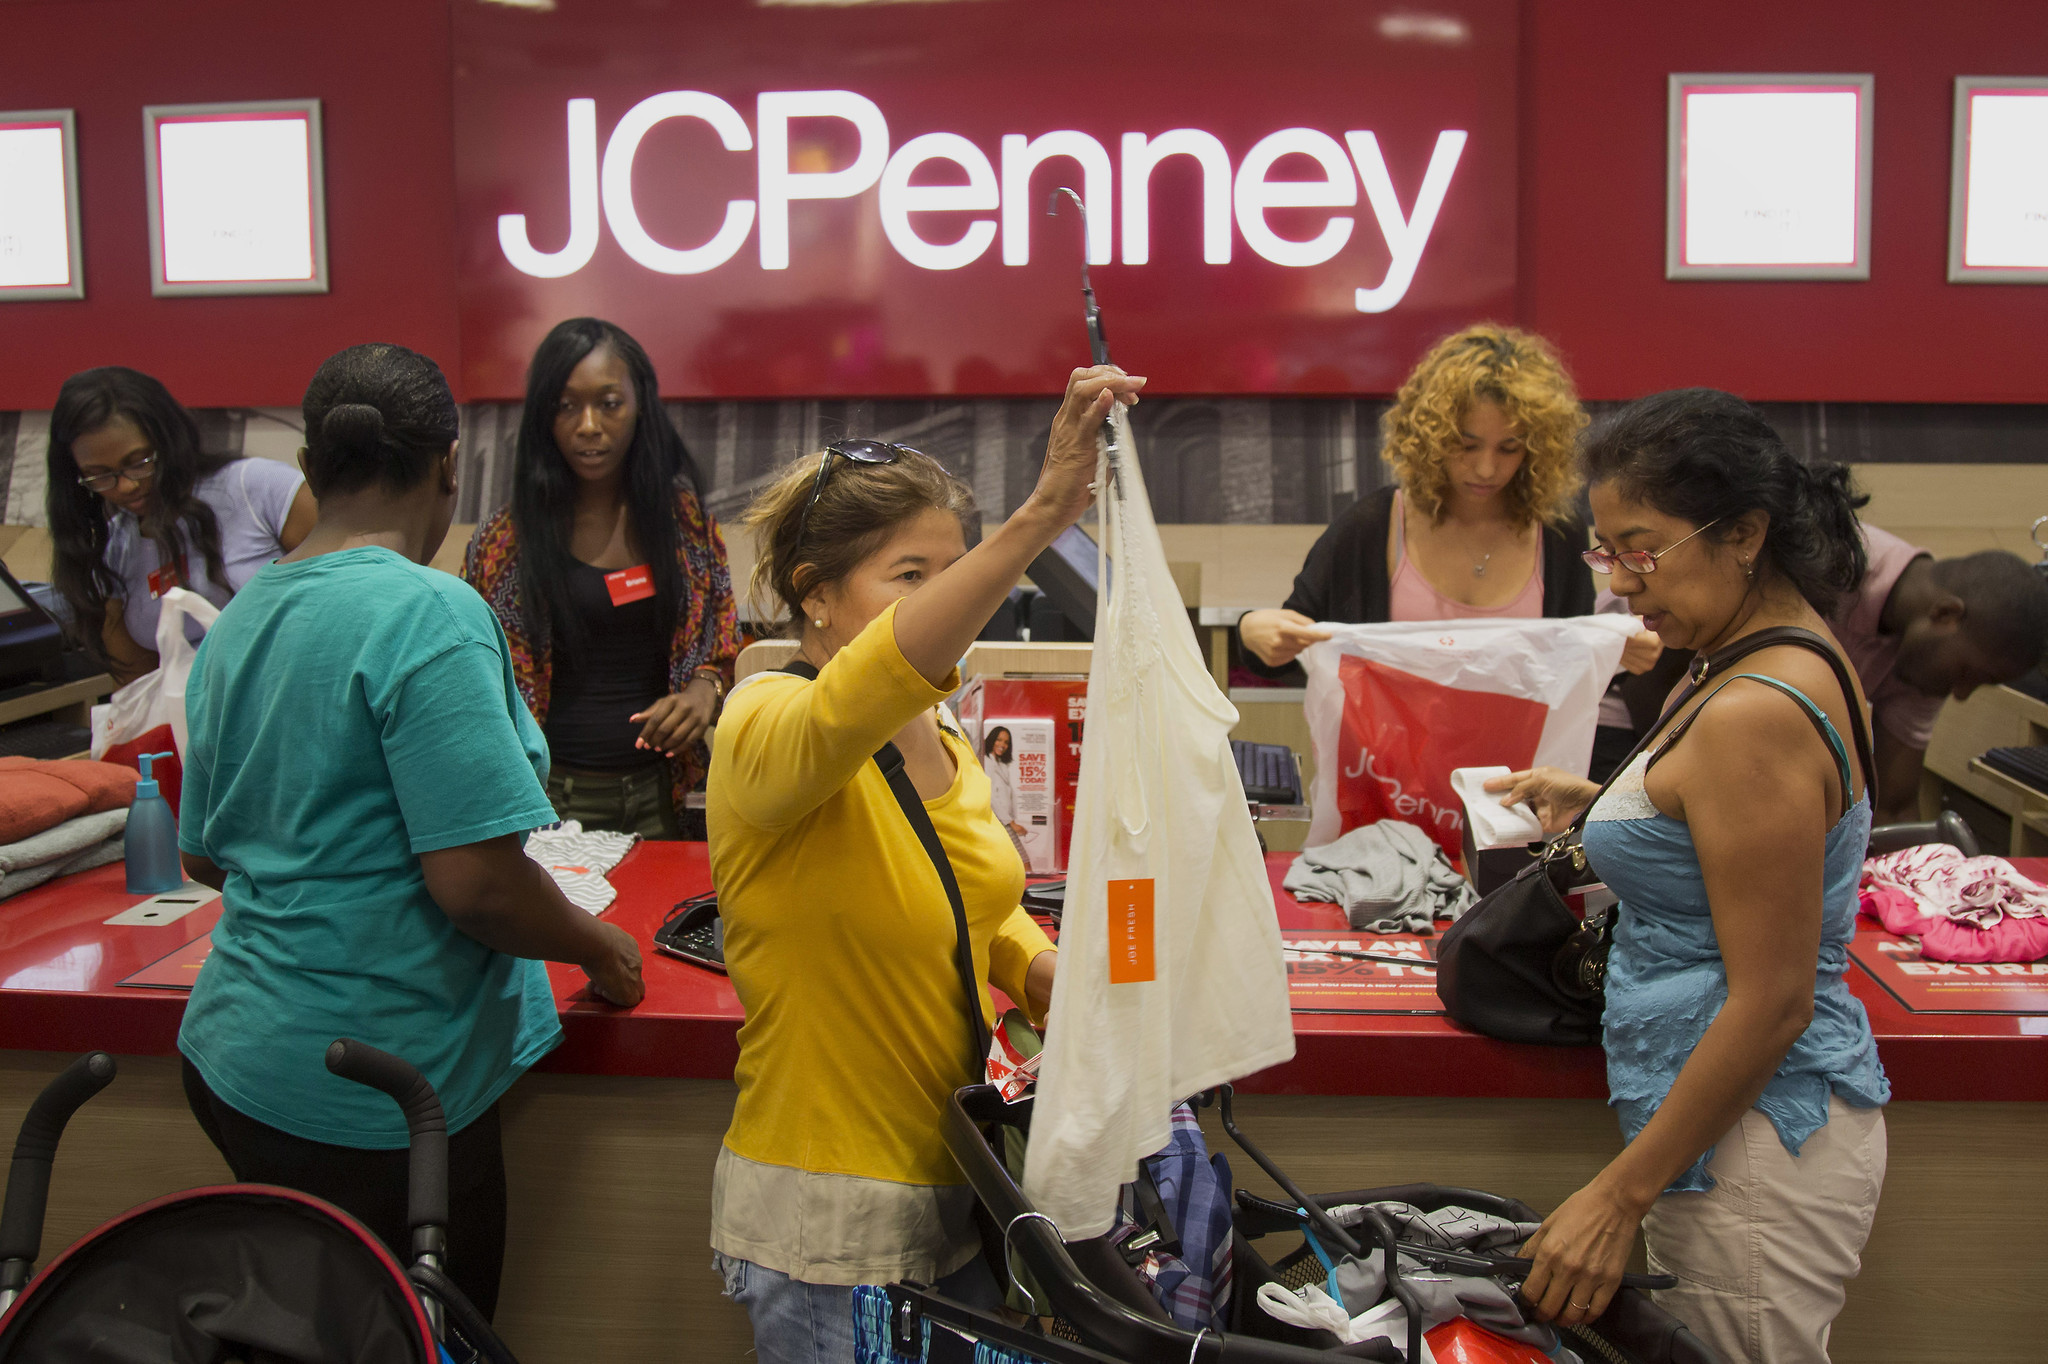 Jc Penney Shoes